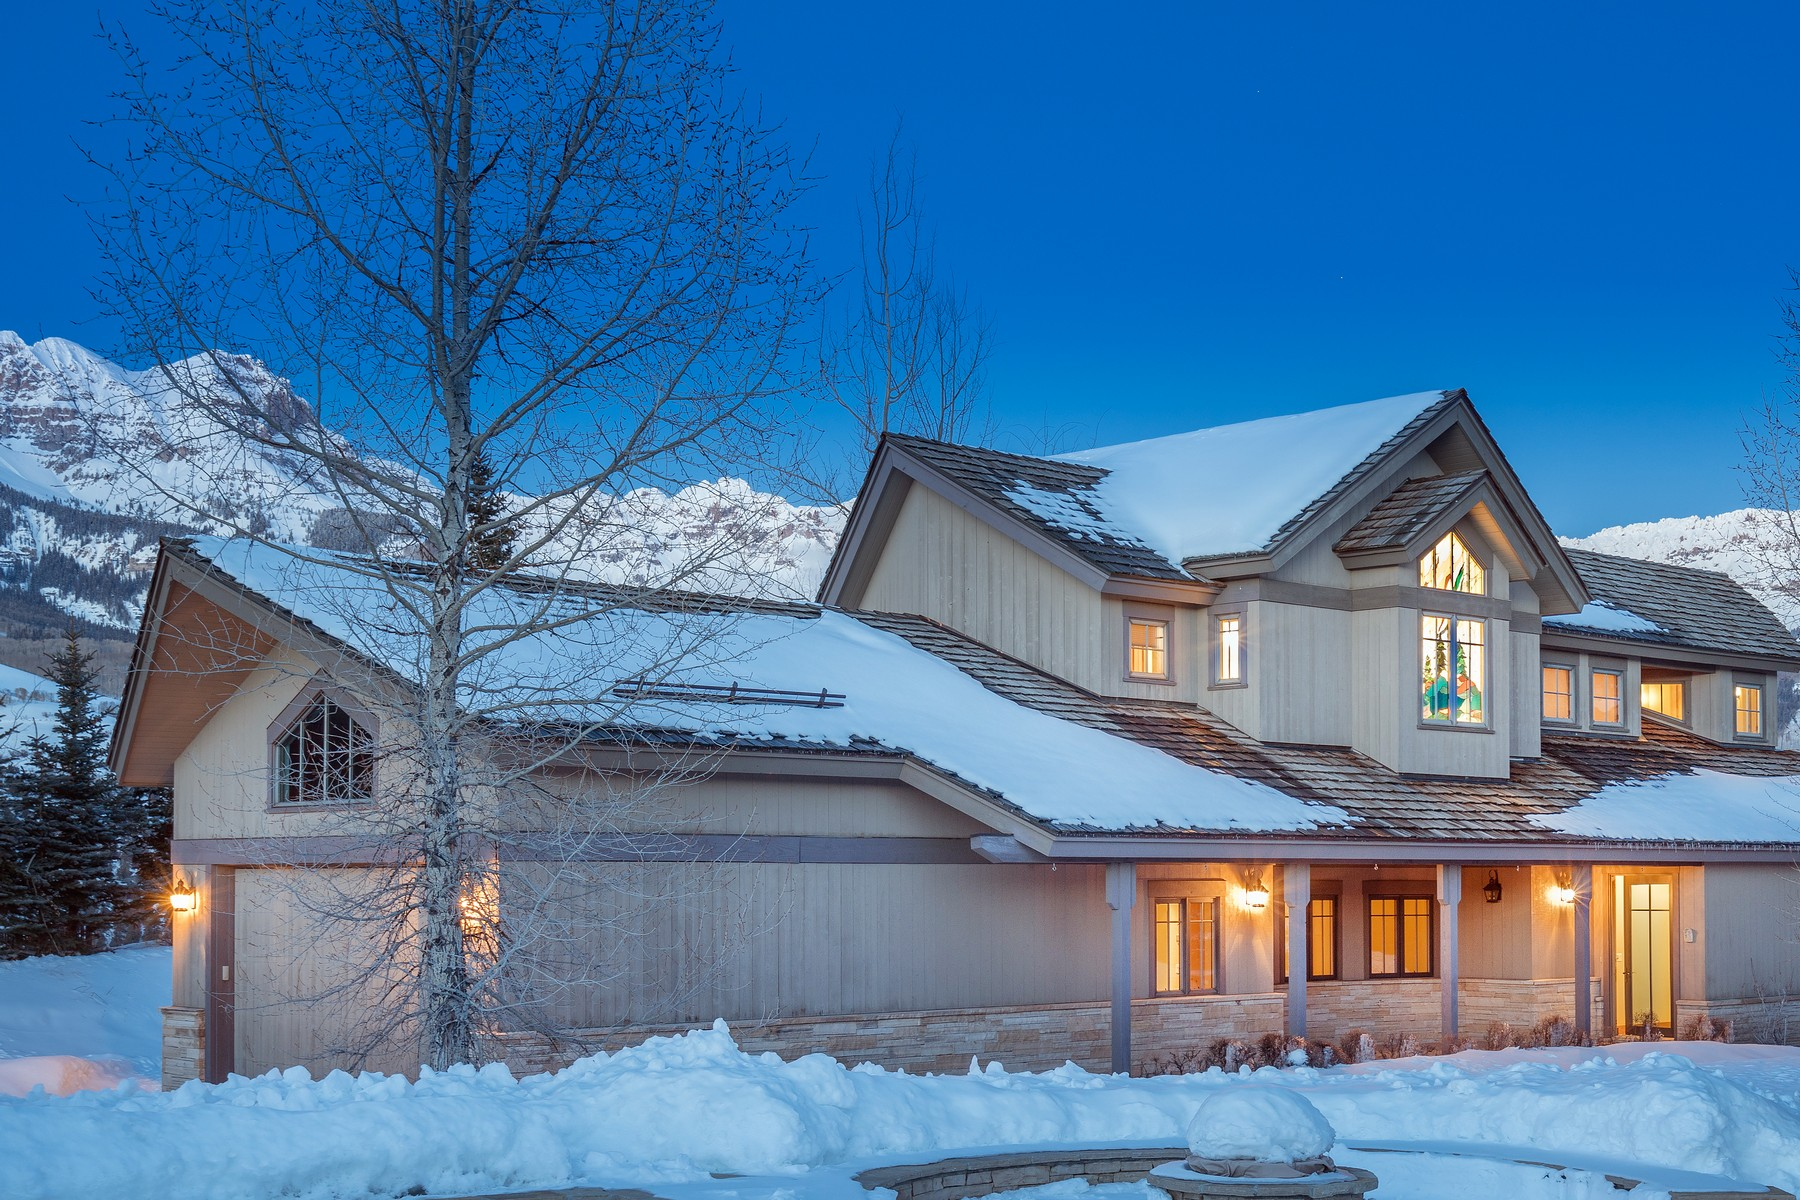 Single Family Home for Sale at 110 Singletree Ridge Telluride, Colorado, 81435 United States